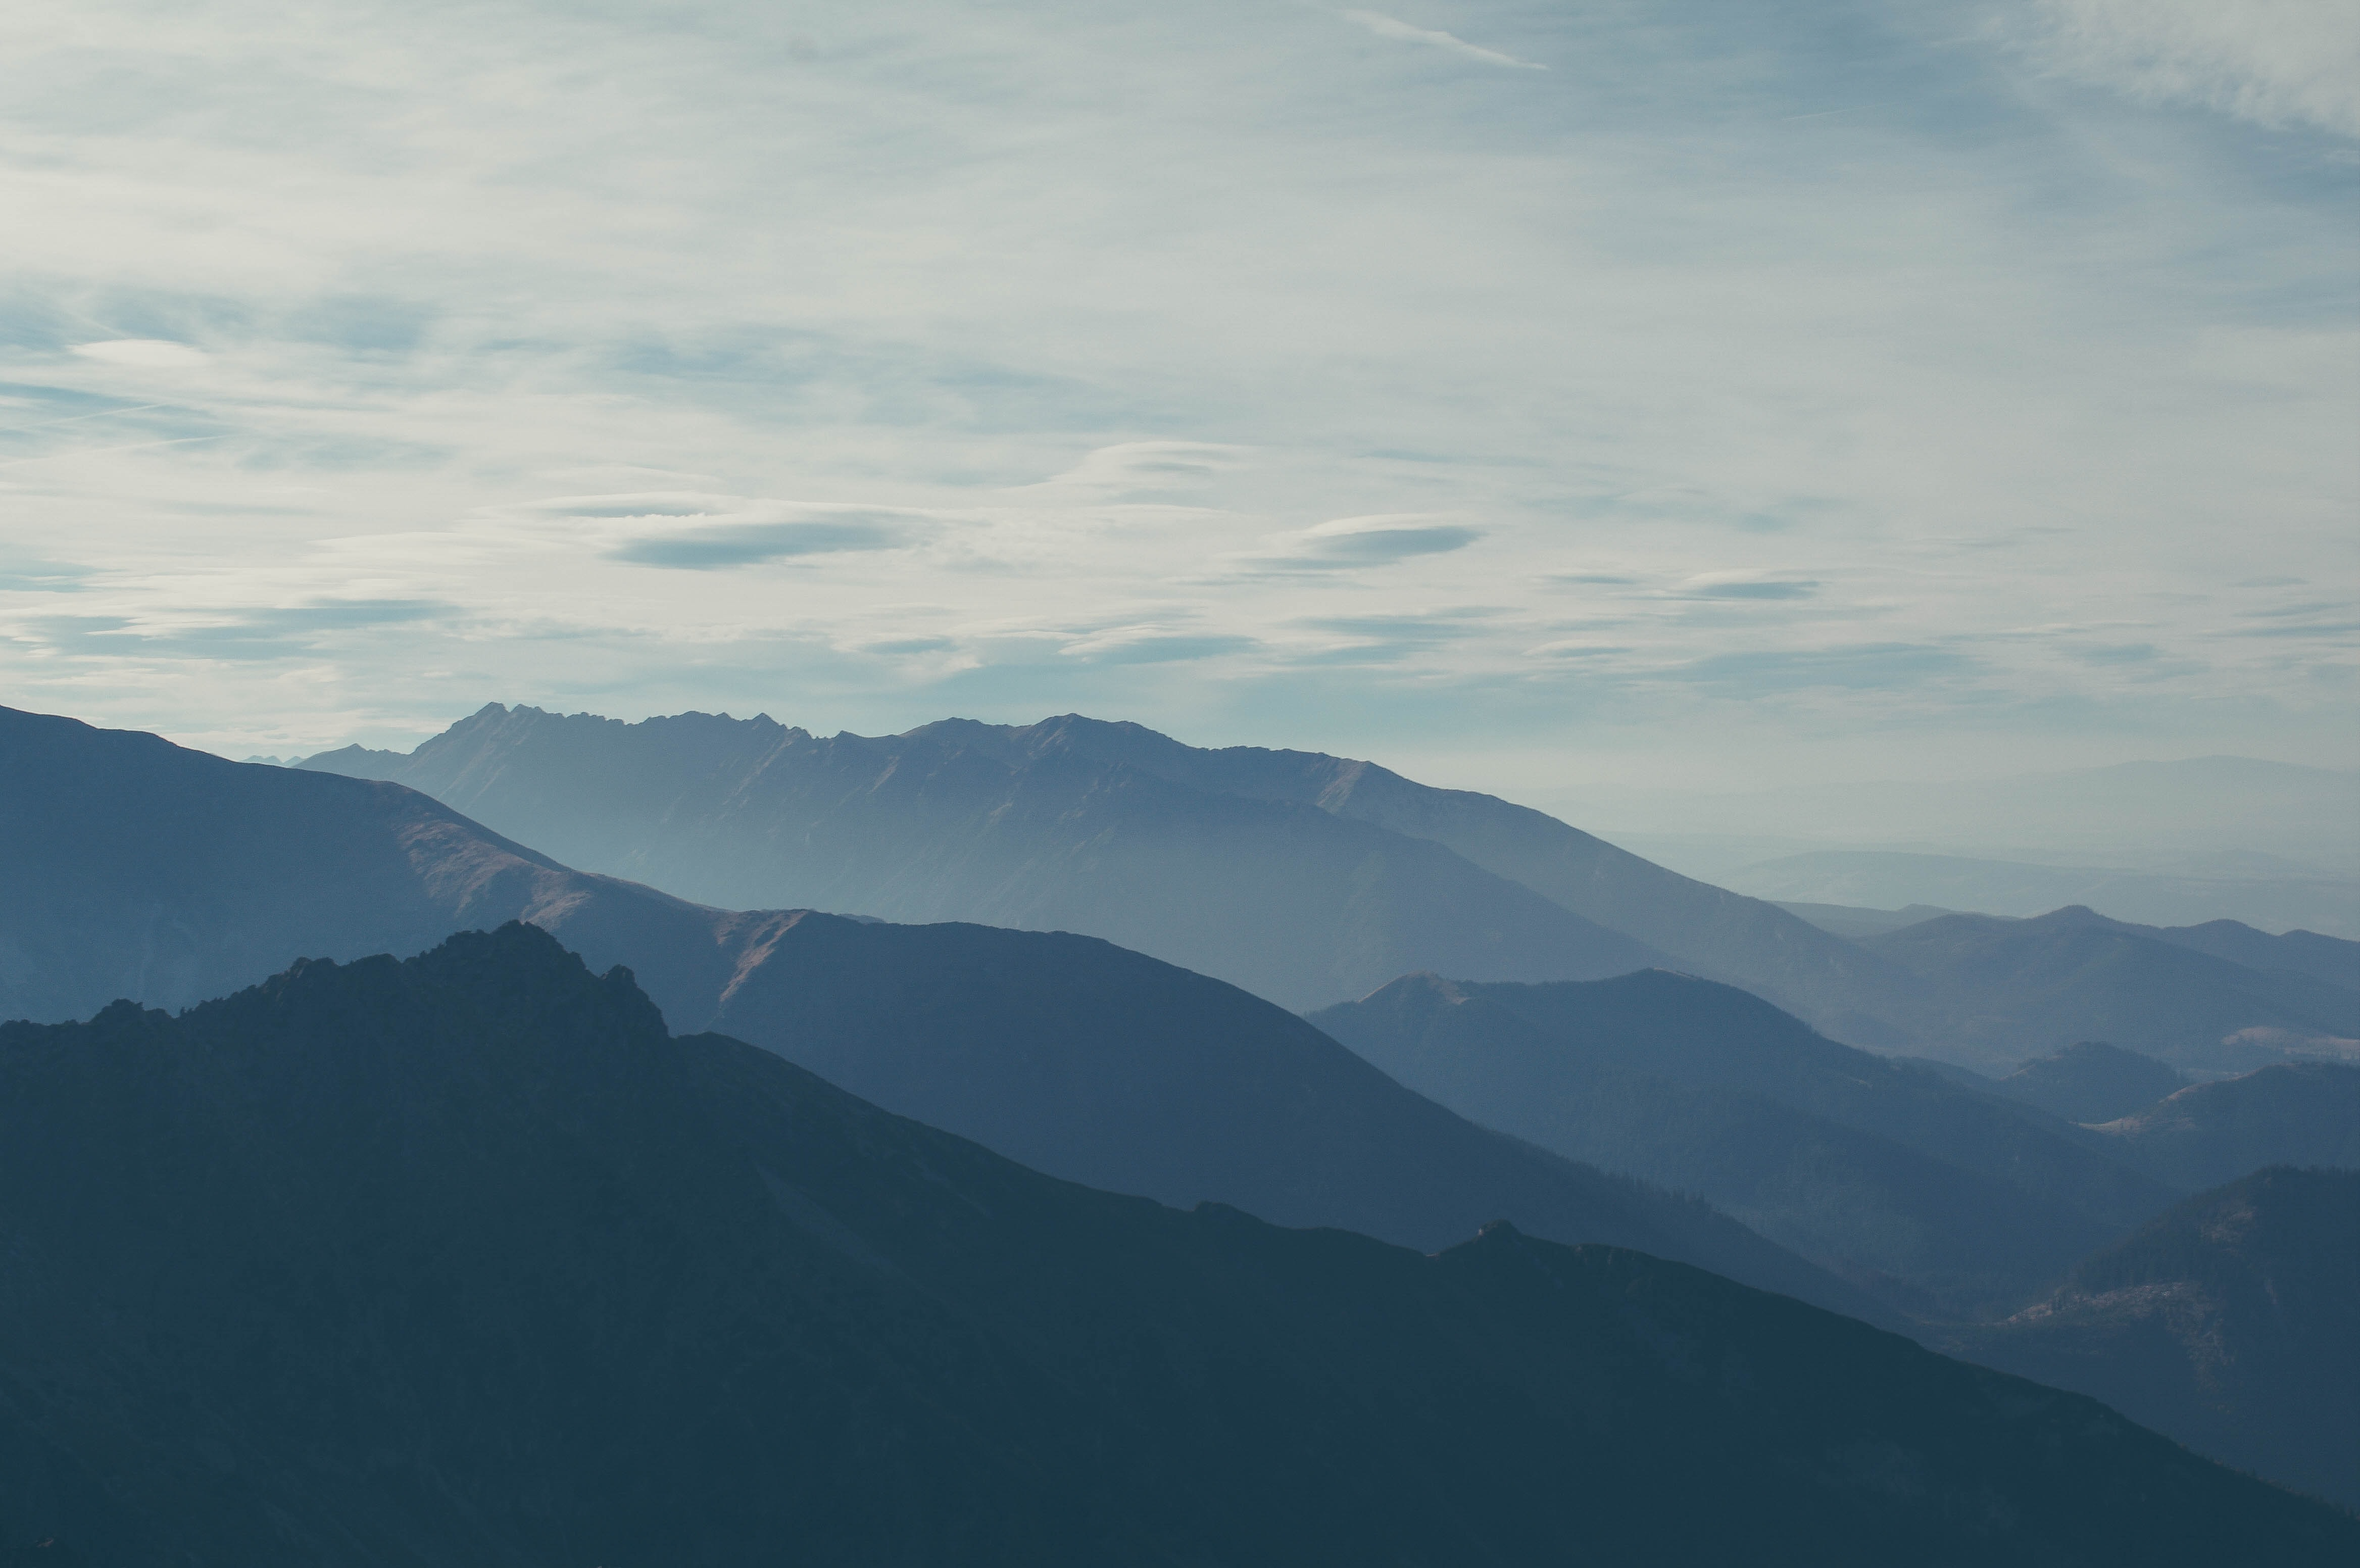 A hazy shot of several mountain ridges stretching to the horizon